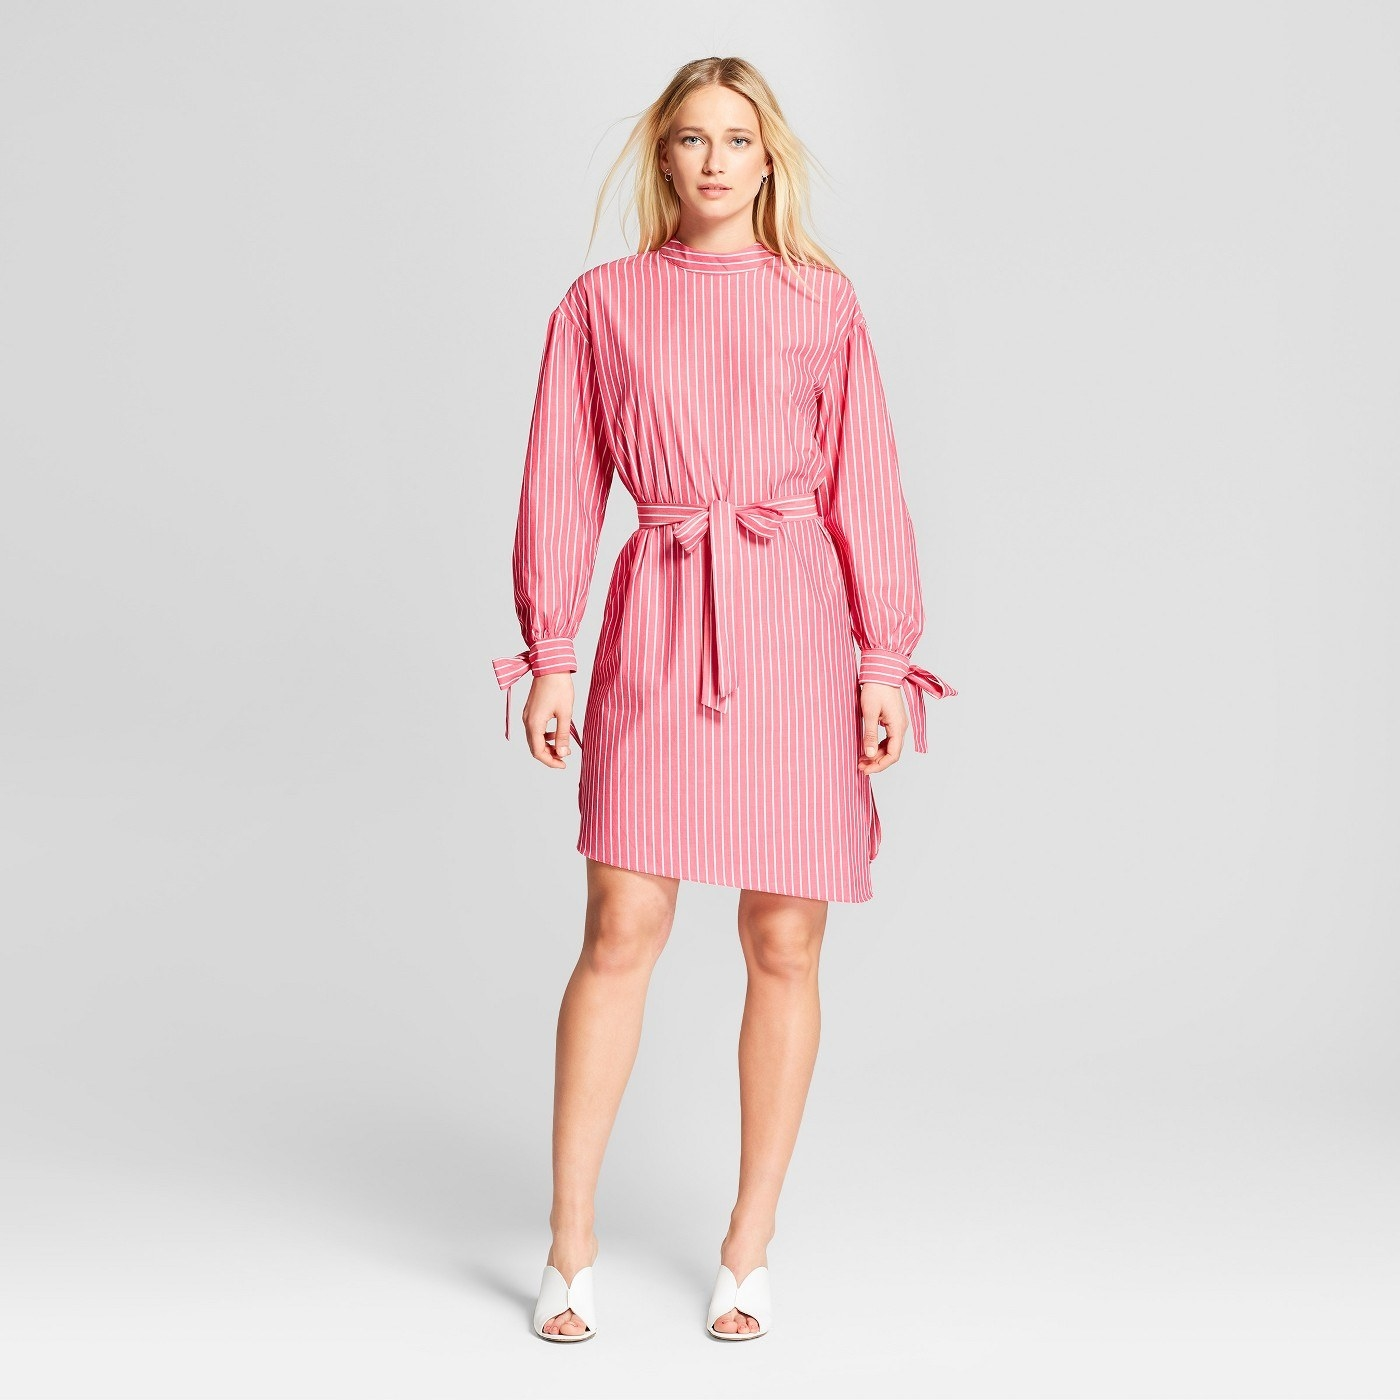 26 Long-Sleeved Dresses That Are Perfect For Fall